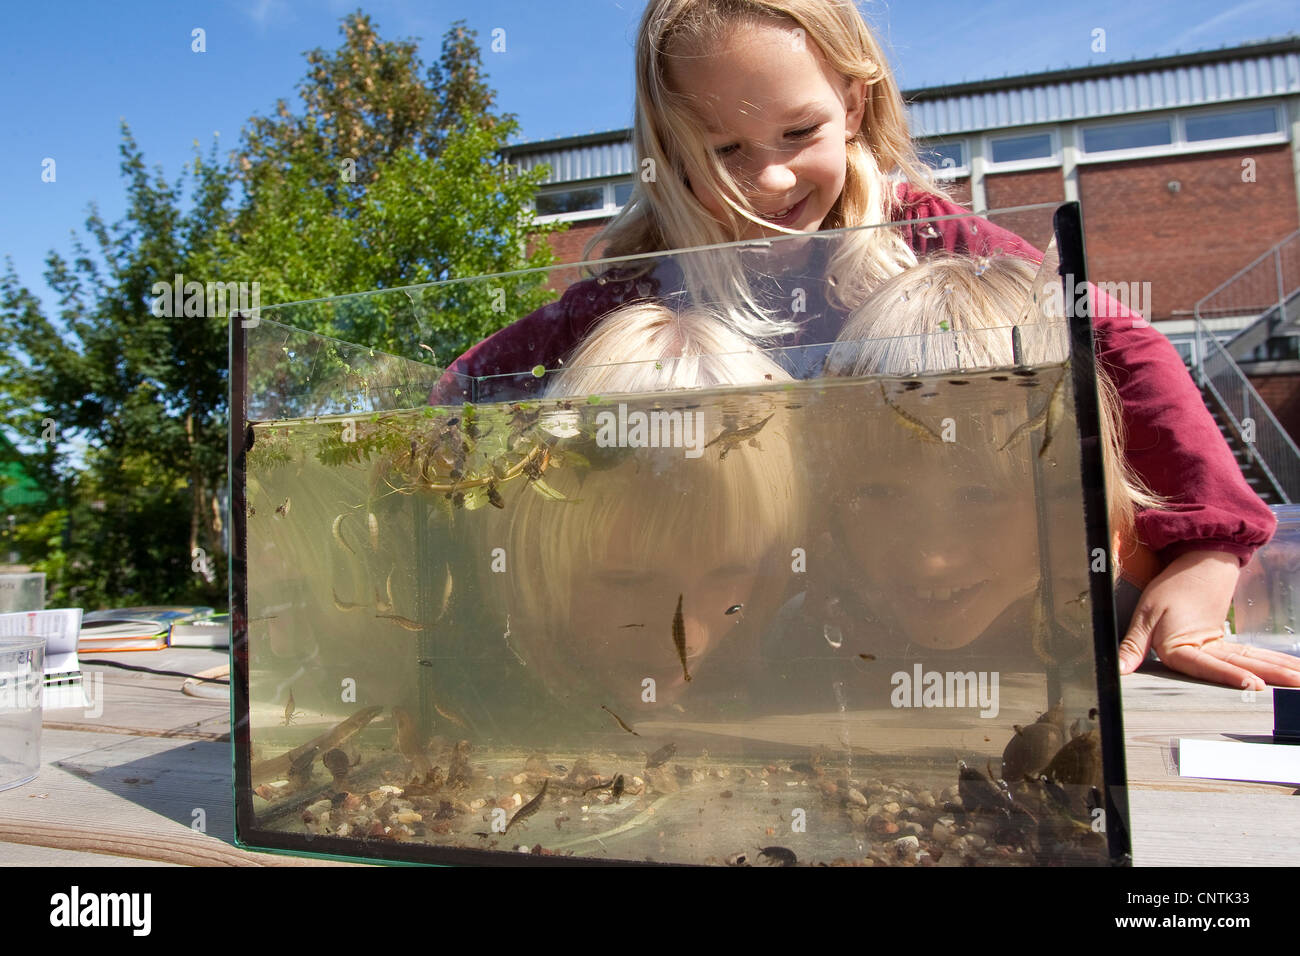 primary school pupils watching animals caught in the self-built pond in the school garden in an aquarium - Stock Image